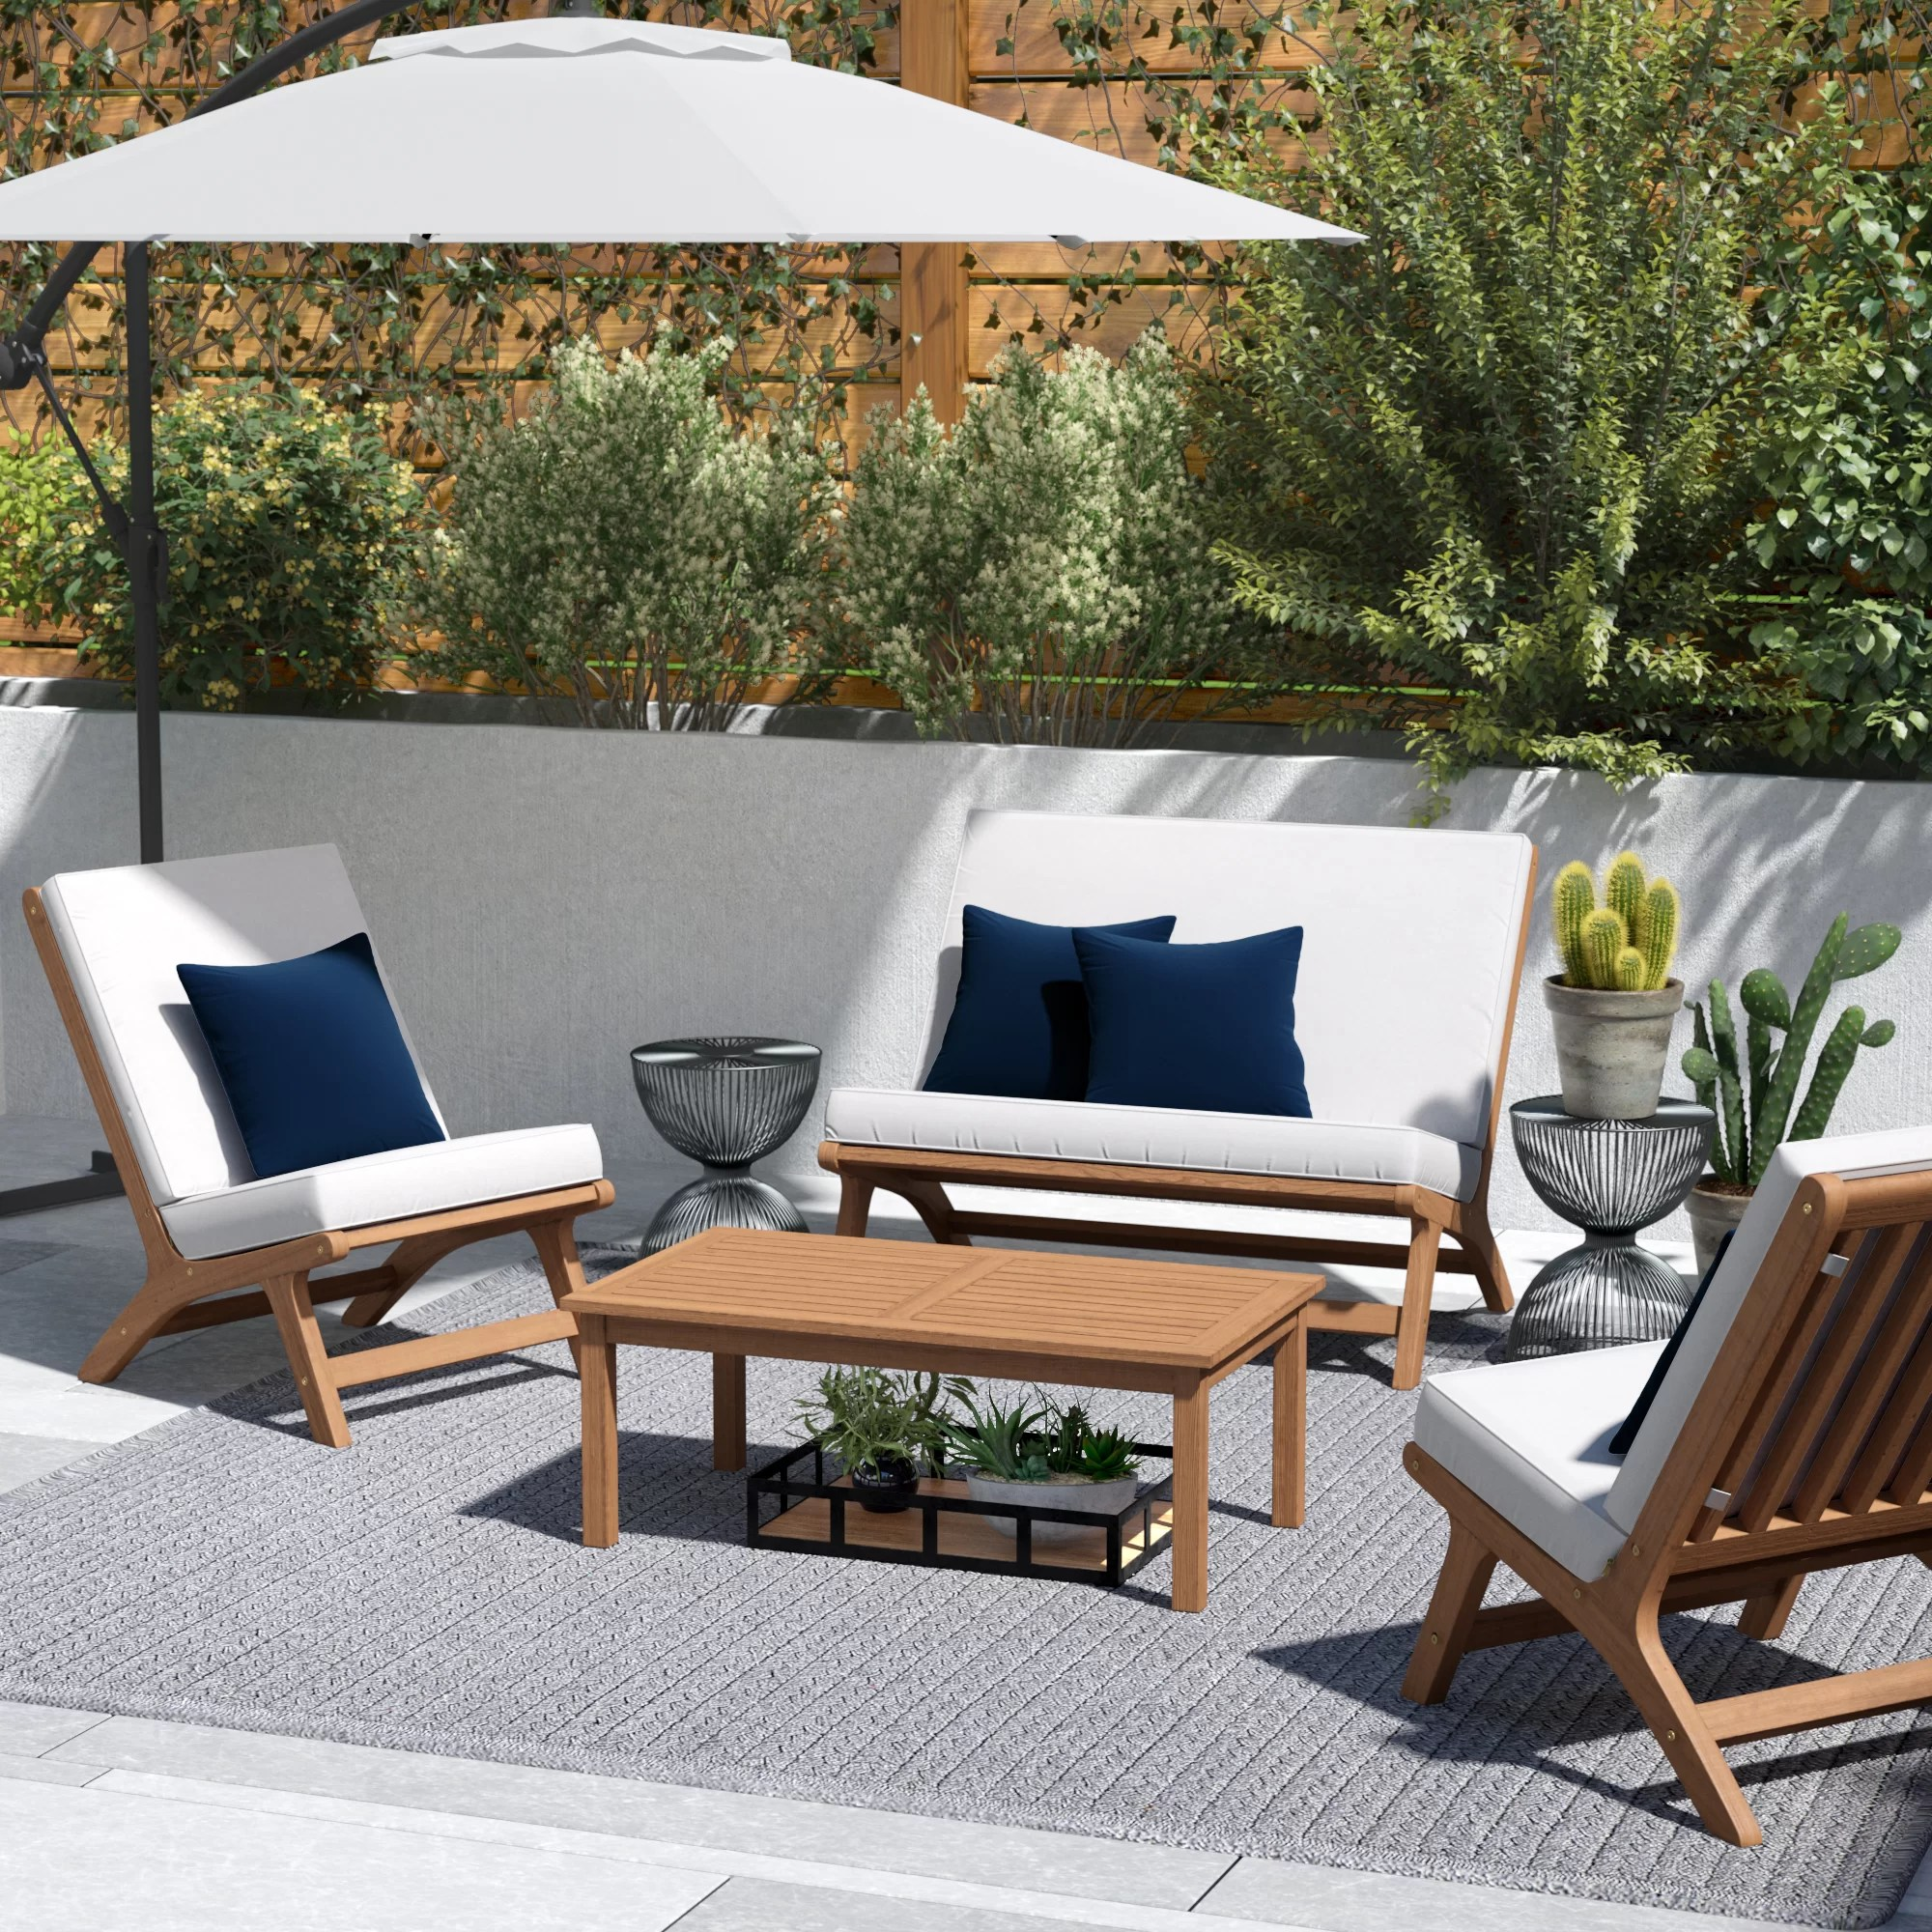 Outdoor Table And Chair Set Cortney 4 Piece Chair Set With Cushions